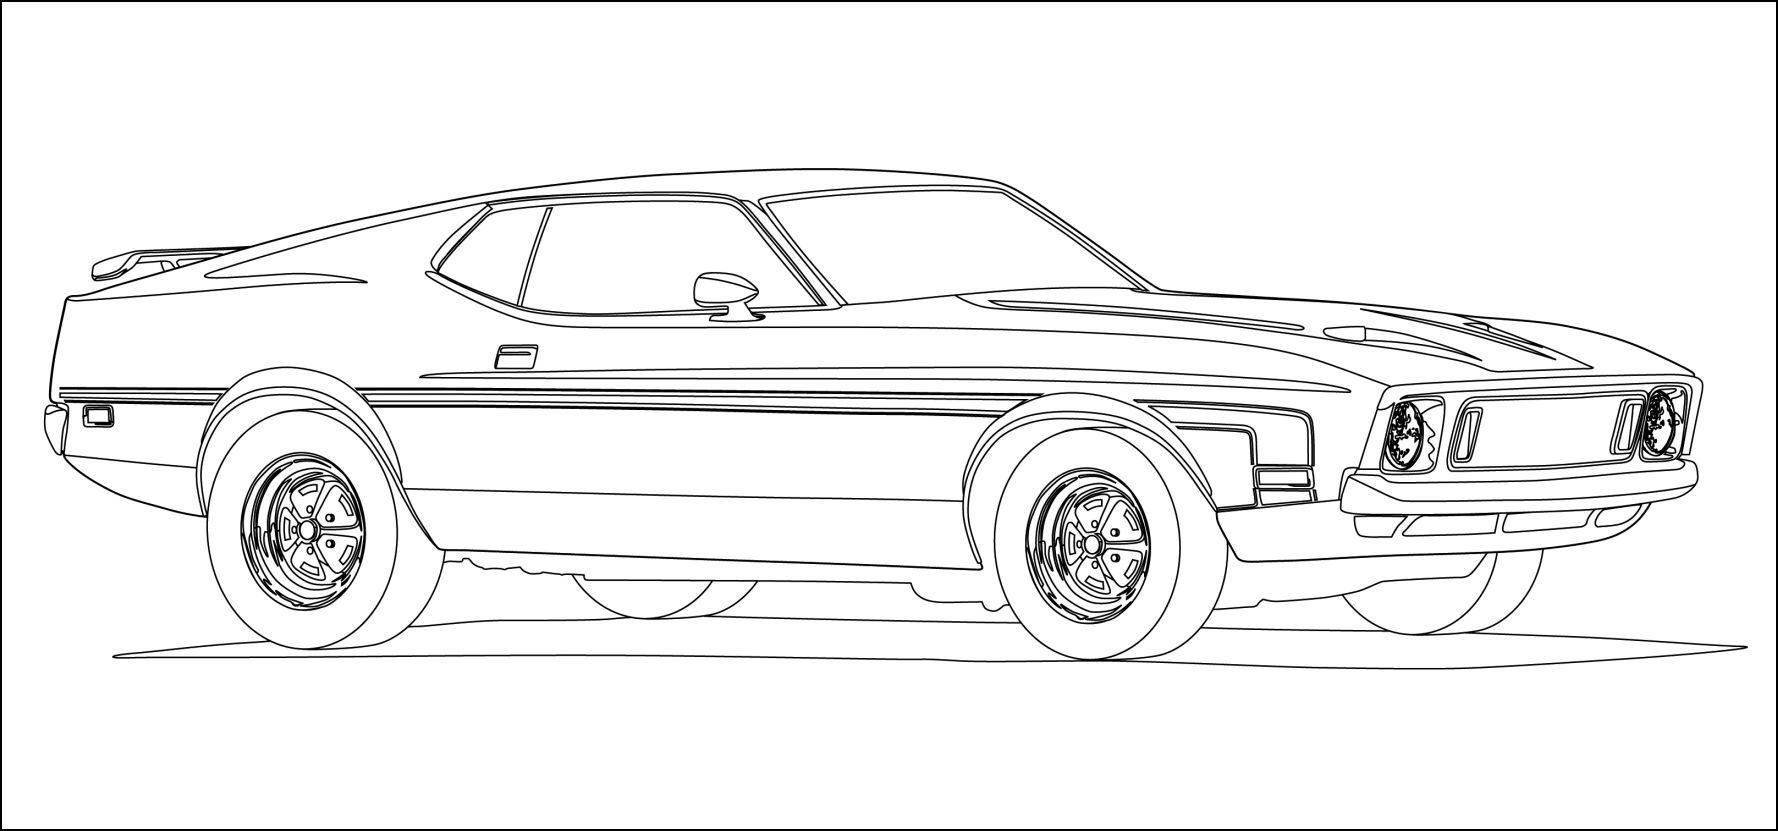 2011 Ford Mustang Coloring Pages 01 Coloring Pages Pinterest